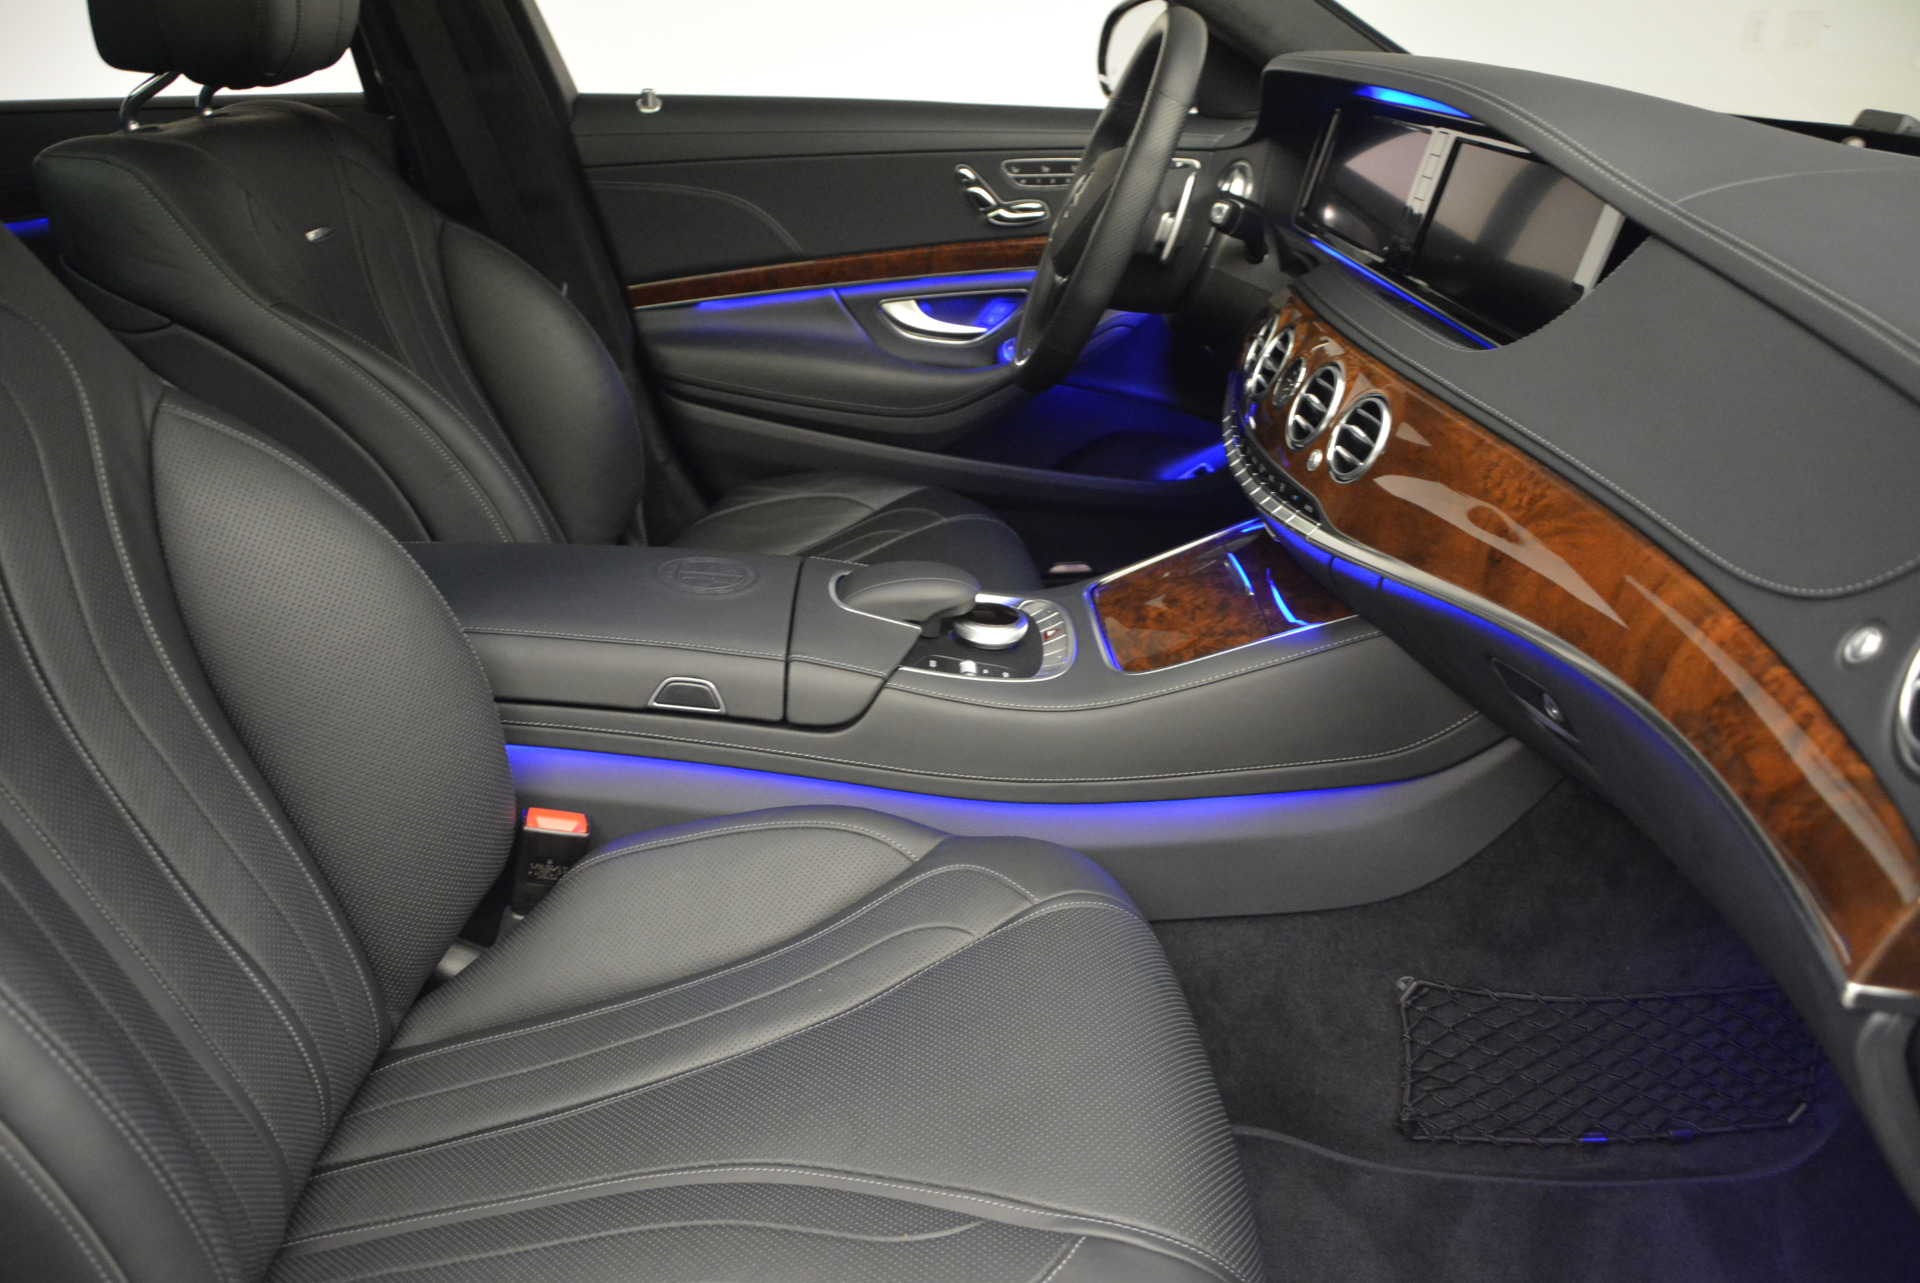 Used 2014 Mercedes Benz S-Class S 63 AMG For Sale In Westport, CT 912_p24